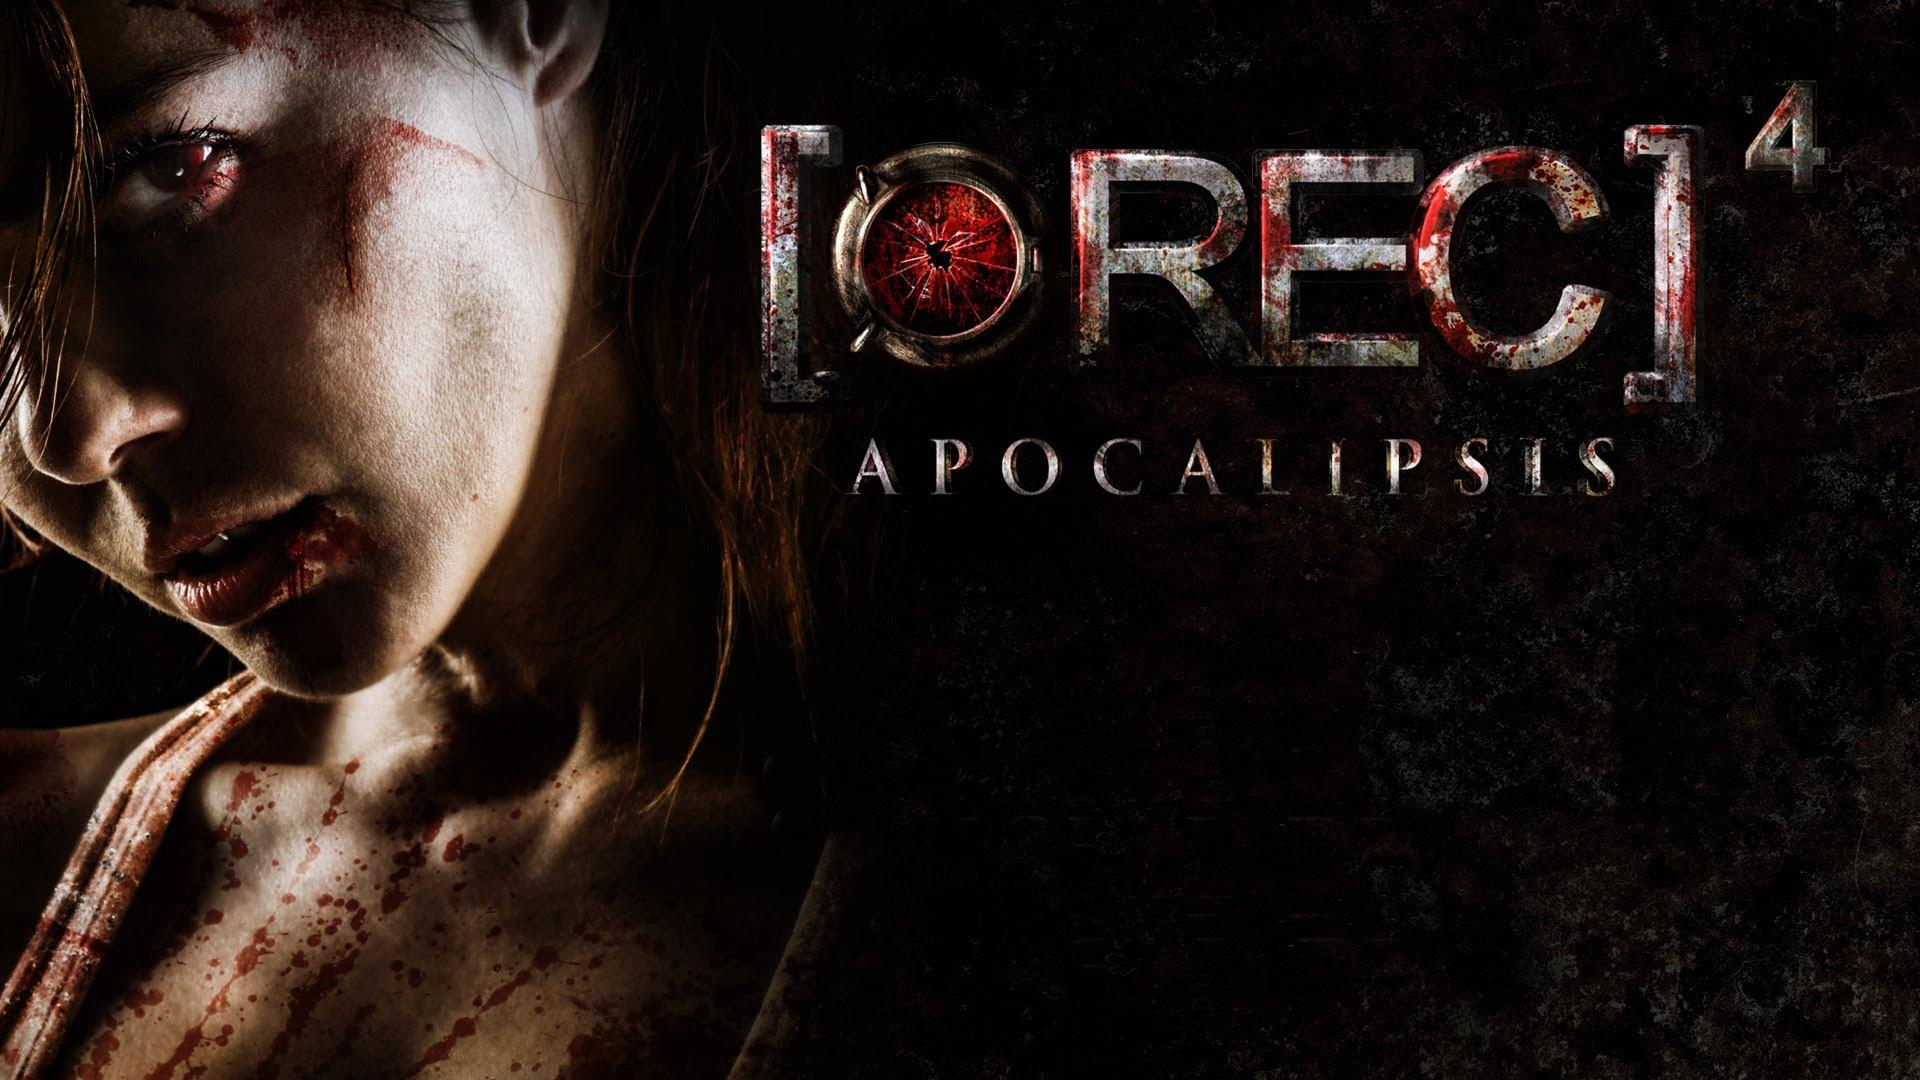 REC 4 Apocalipsis 2015 Movie Poster HD Wallpaper   StylishHDWallpapers 1920x1080